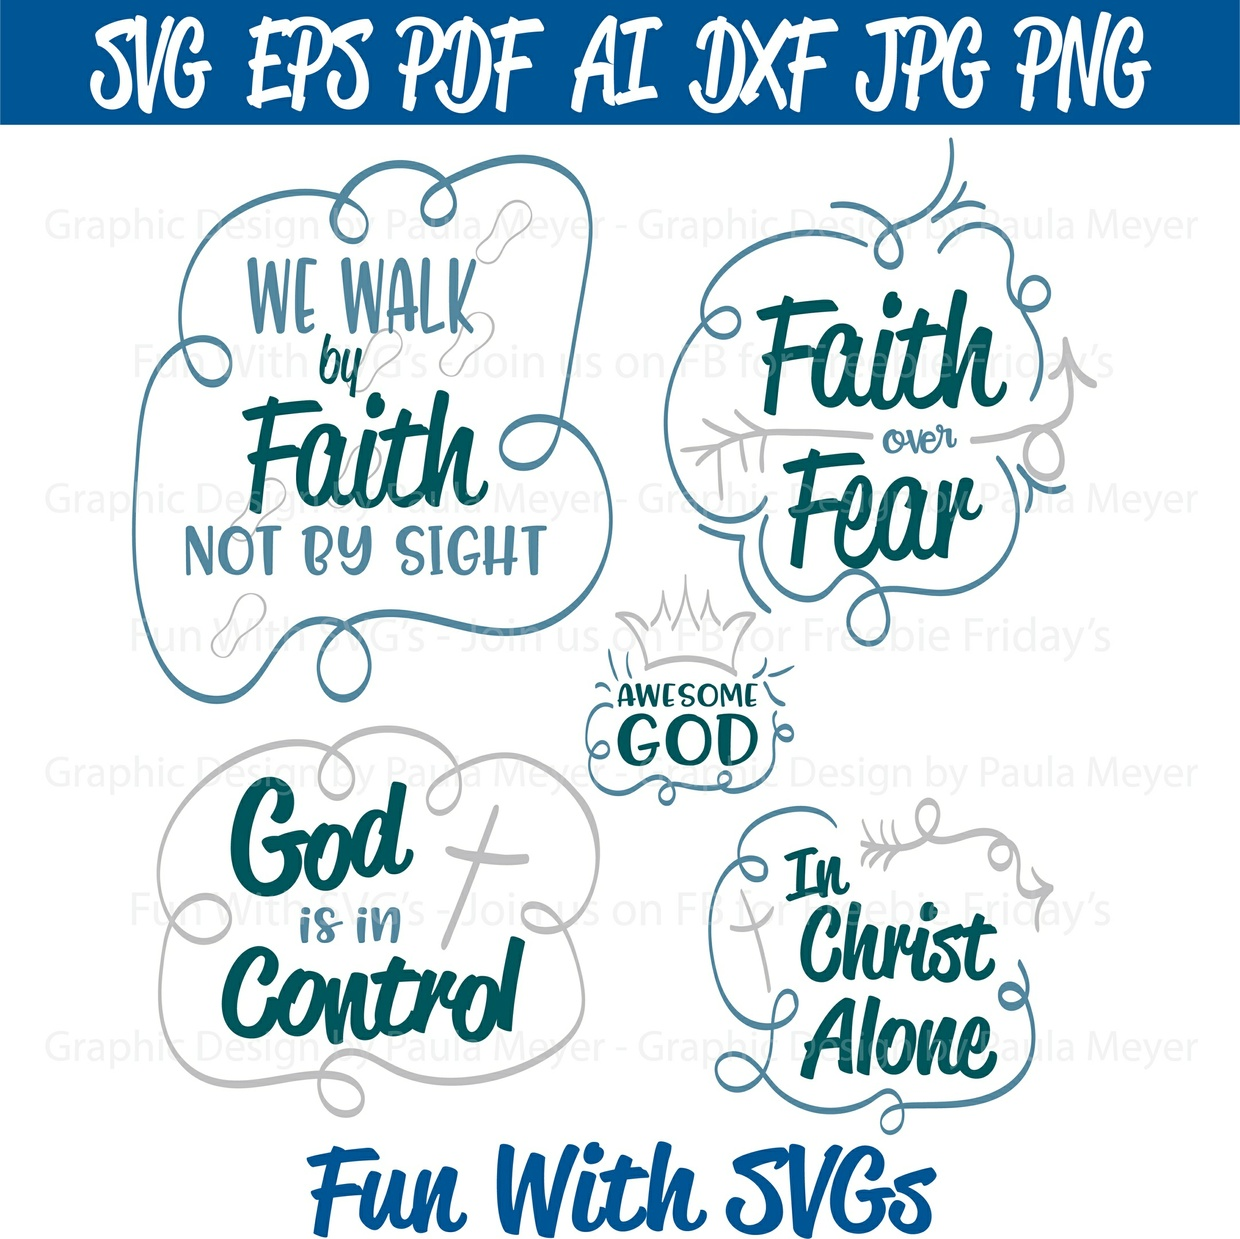 Walk by Faith - SVG Cut File, High Resolution Printable Graphics and Editable Vector Art